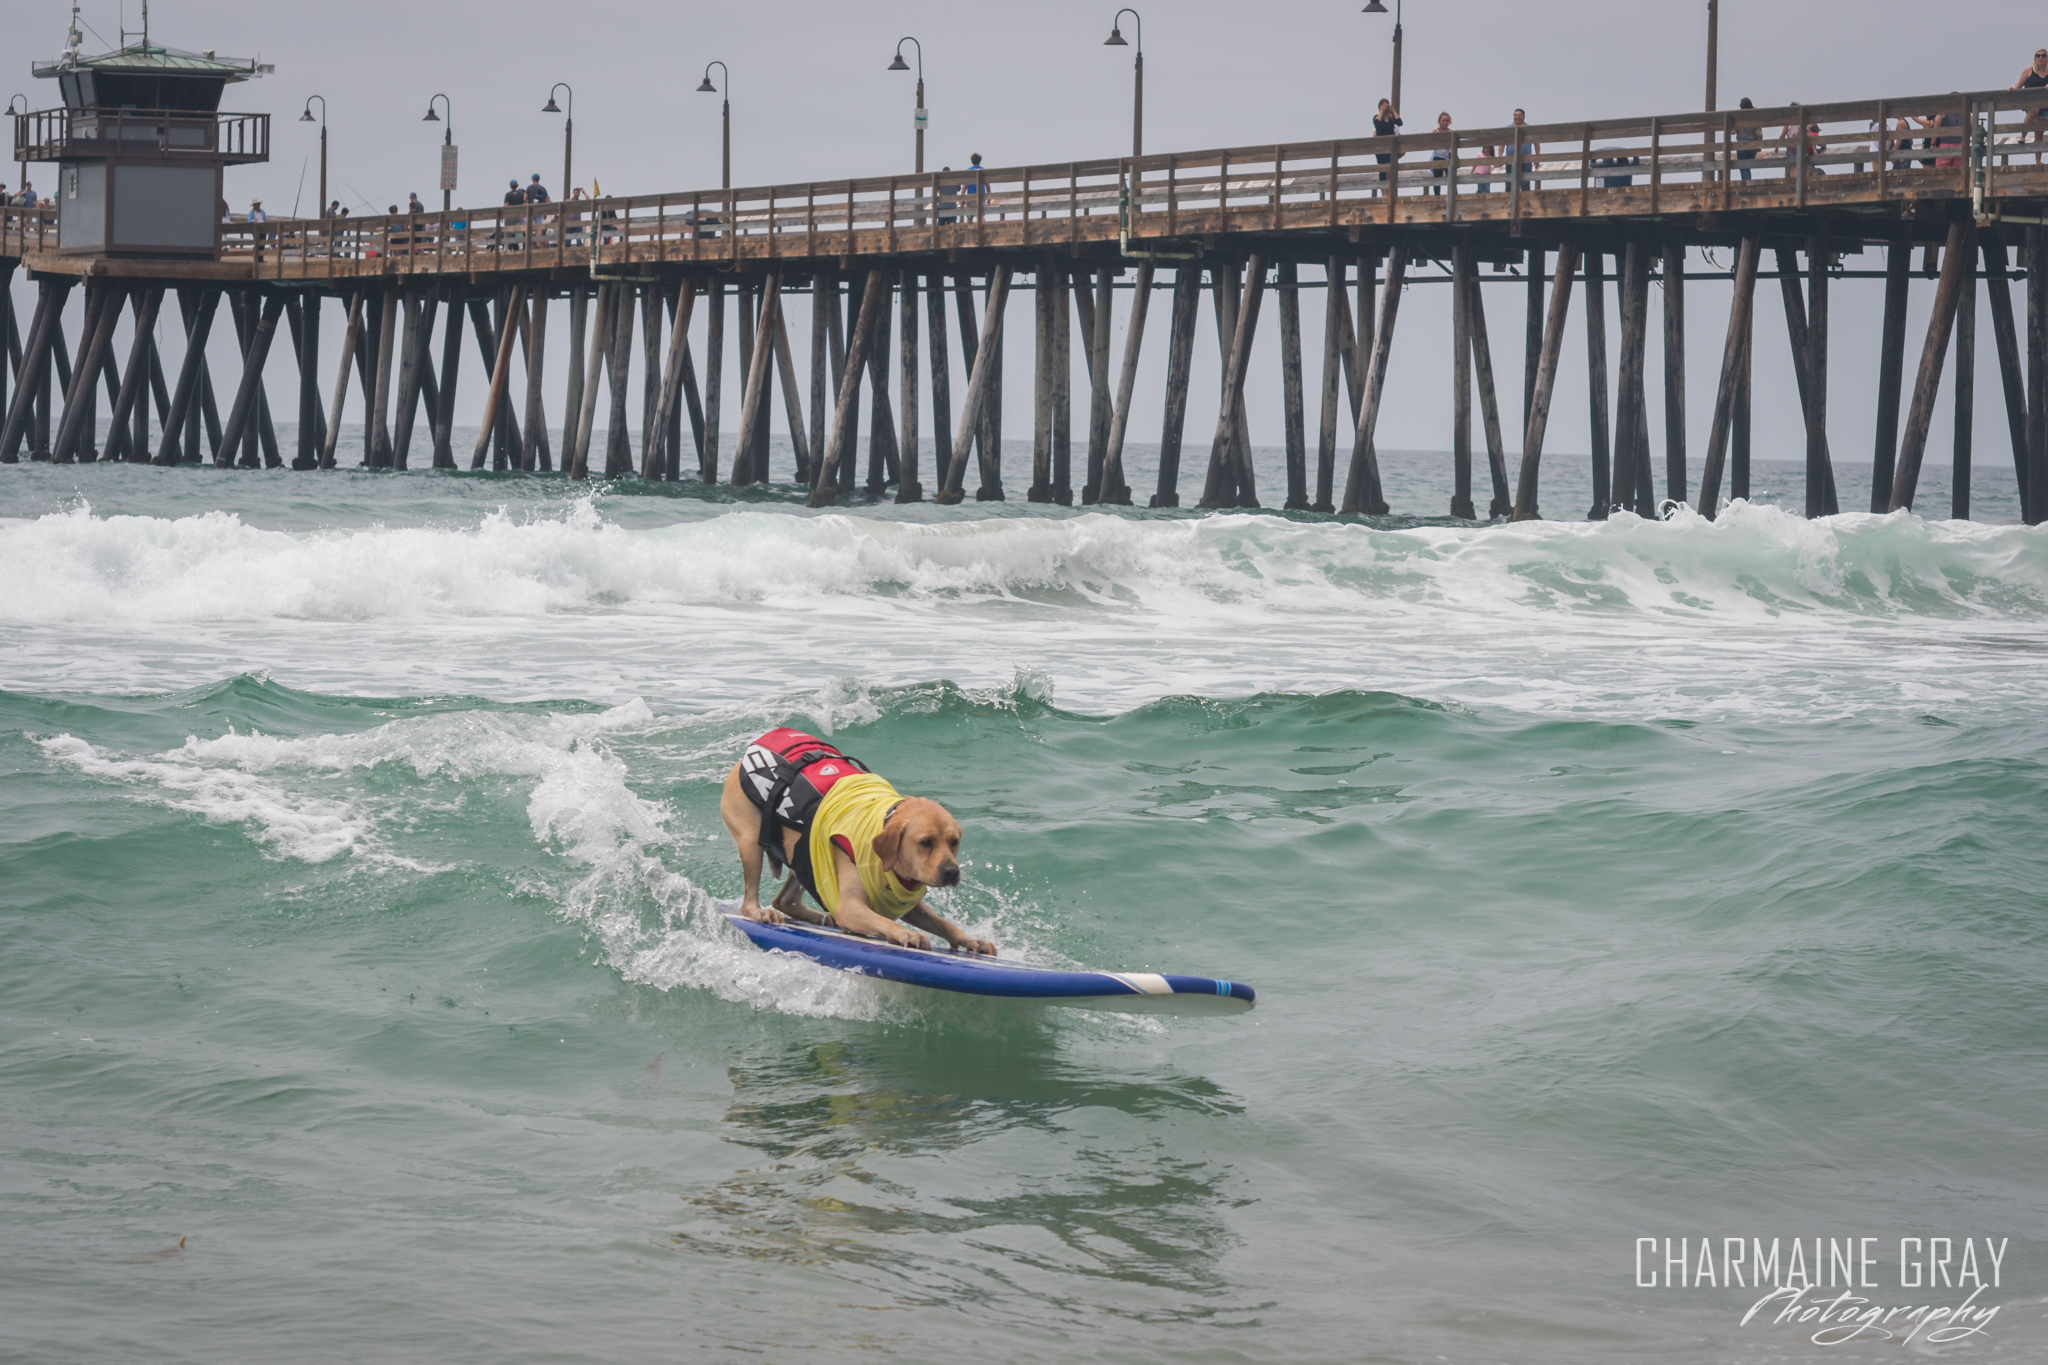 pet photographer, pet photography, pet portrait, pet, animal, charmaine gray photography, charmaine gray pet photography, san diego,dog,canine,california,surf,surfing,yellow lab, labrador retreiver, charie surfsup